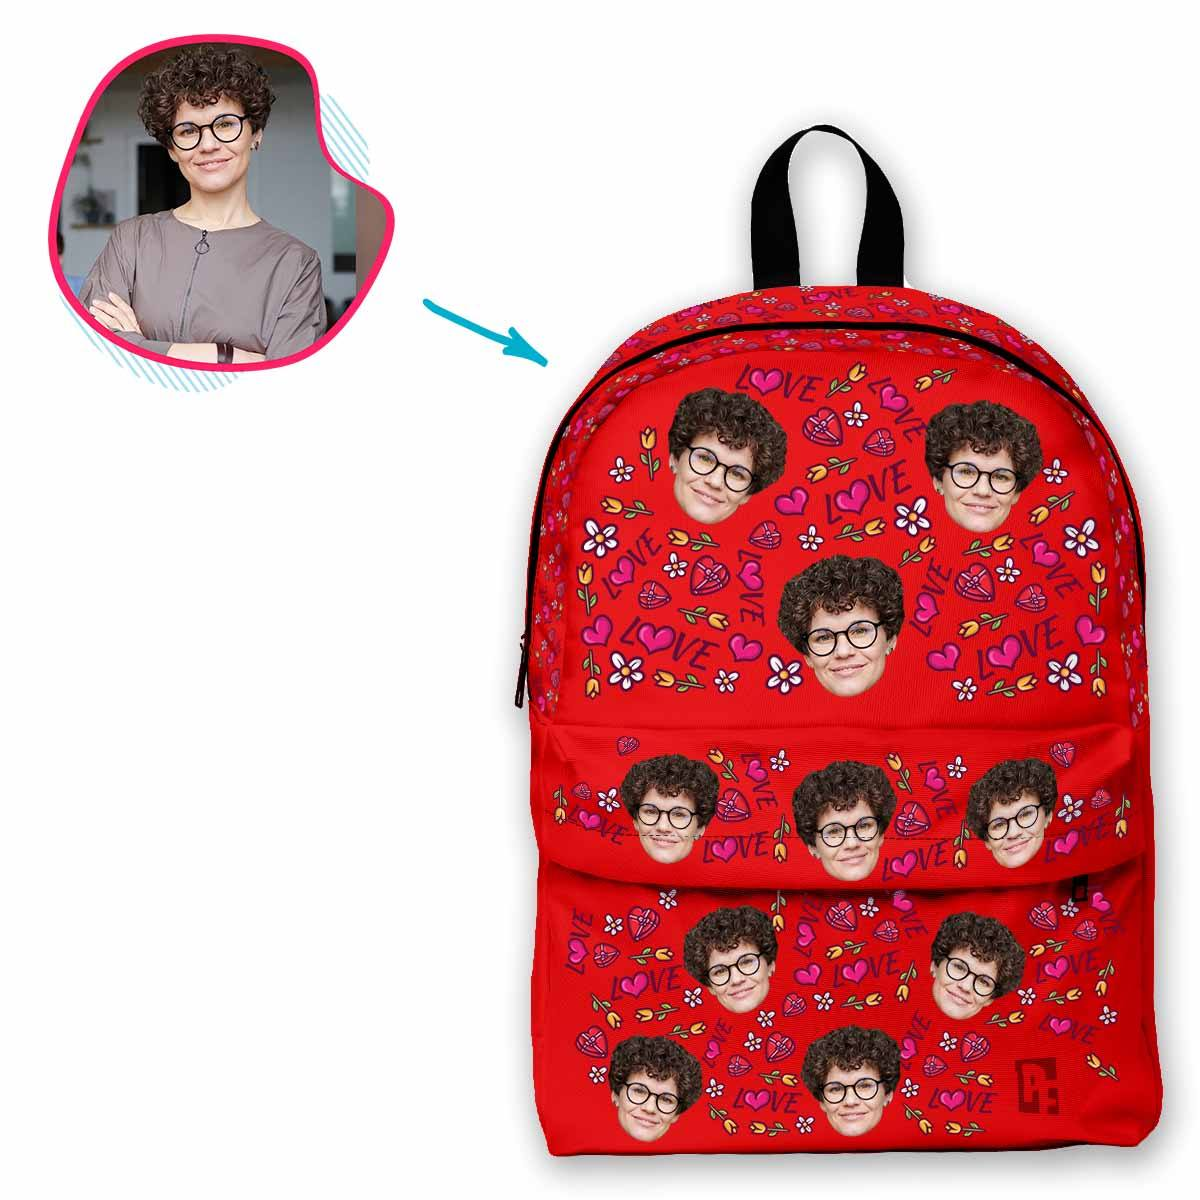 red Hearts and Flowers classic backpack personalized with photo of face printed on it